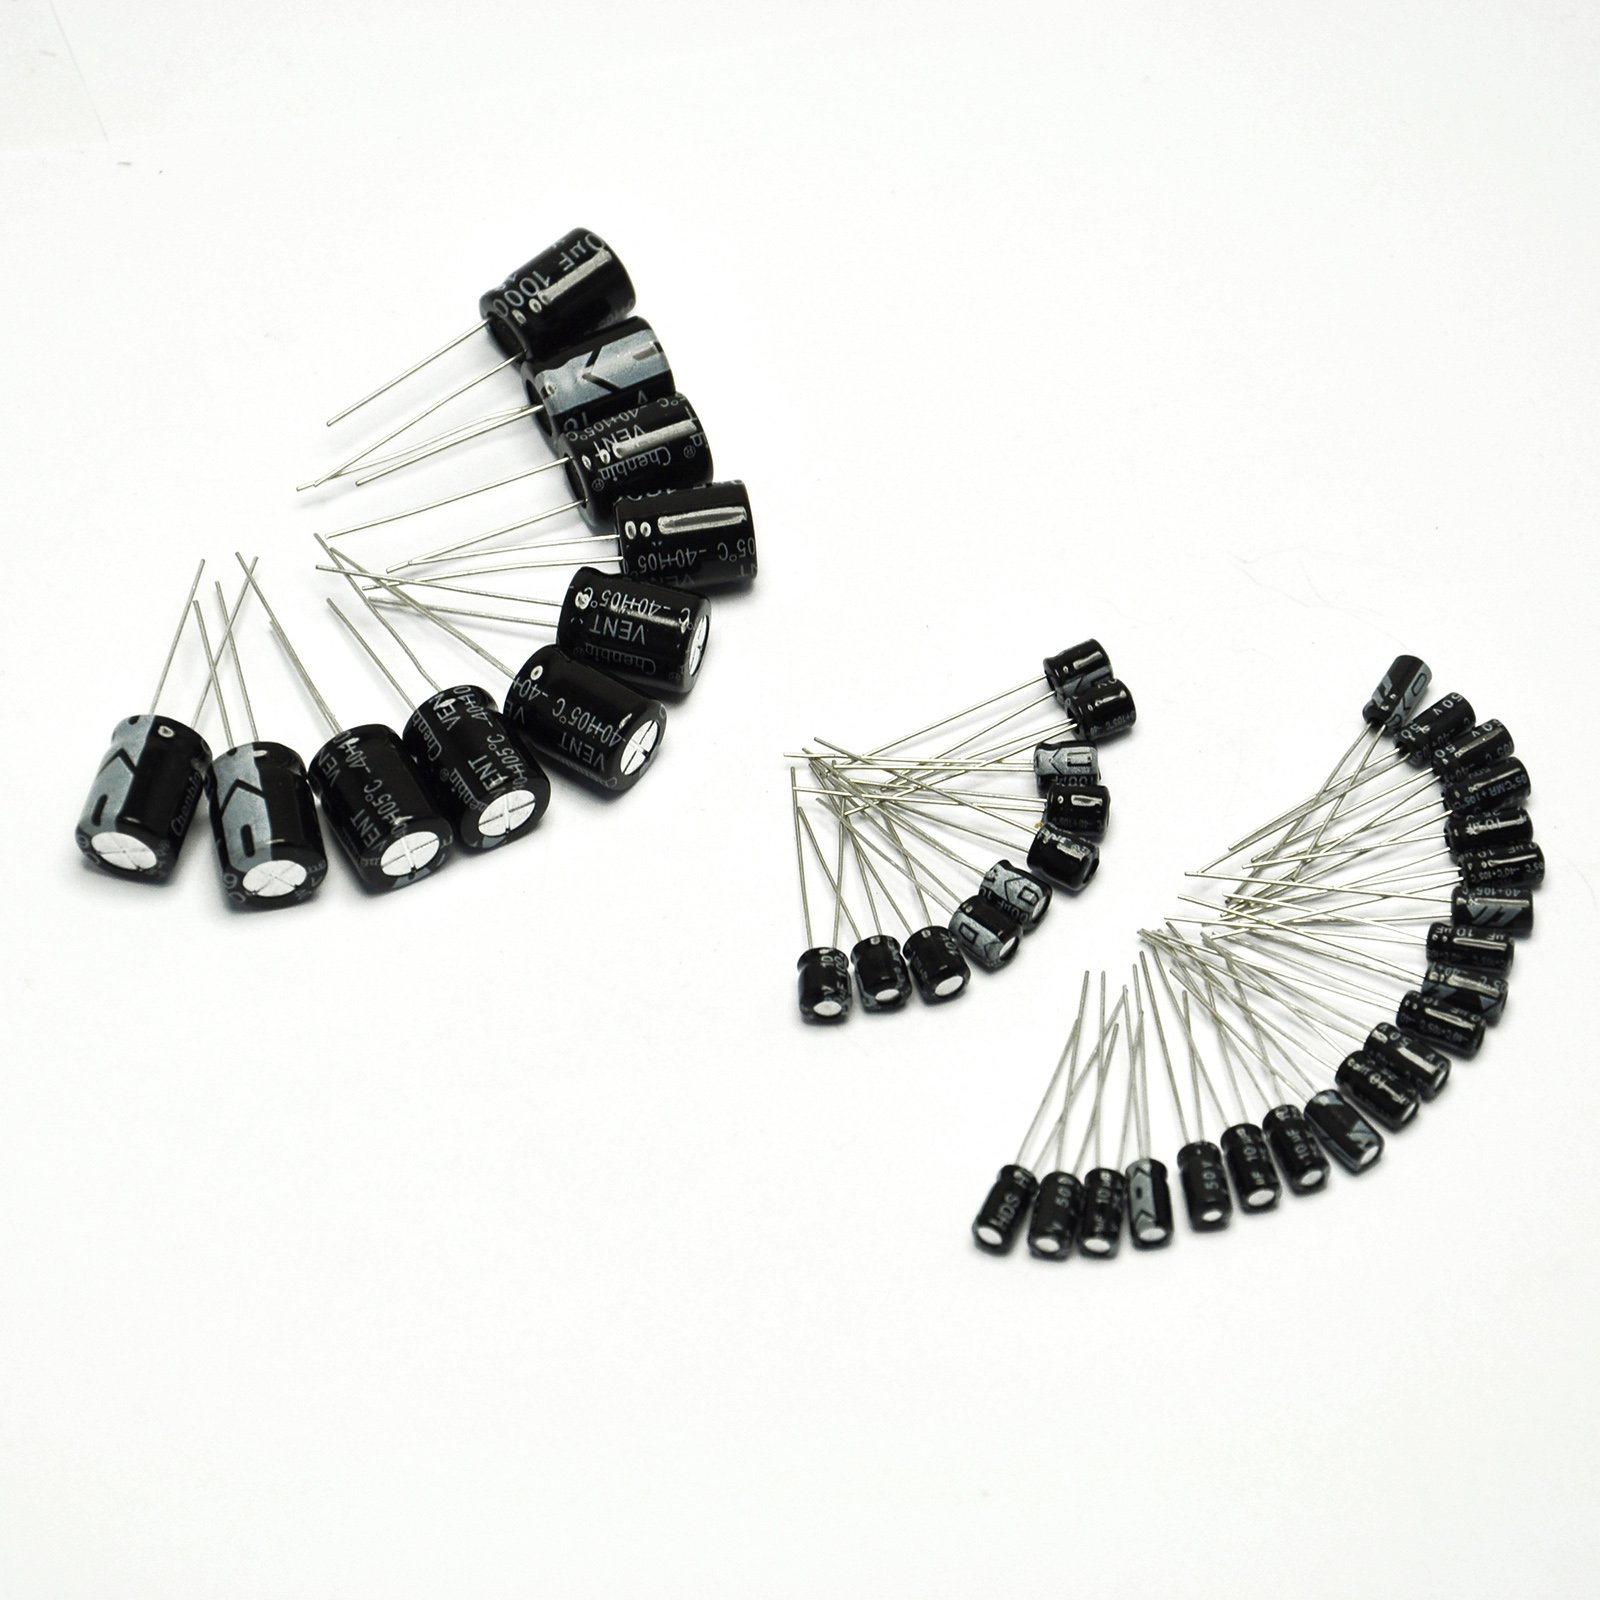 Cheap 100uf Capacitor Code Find 100uf Capacitor Code Deals On Line